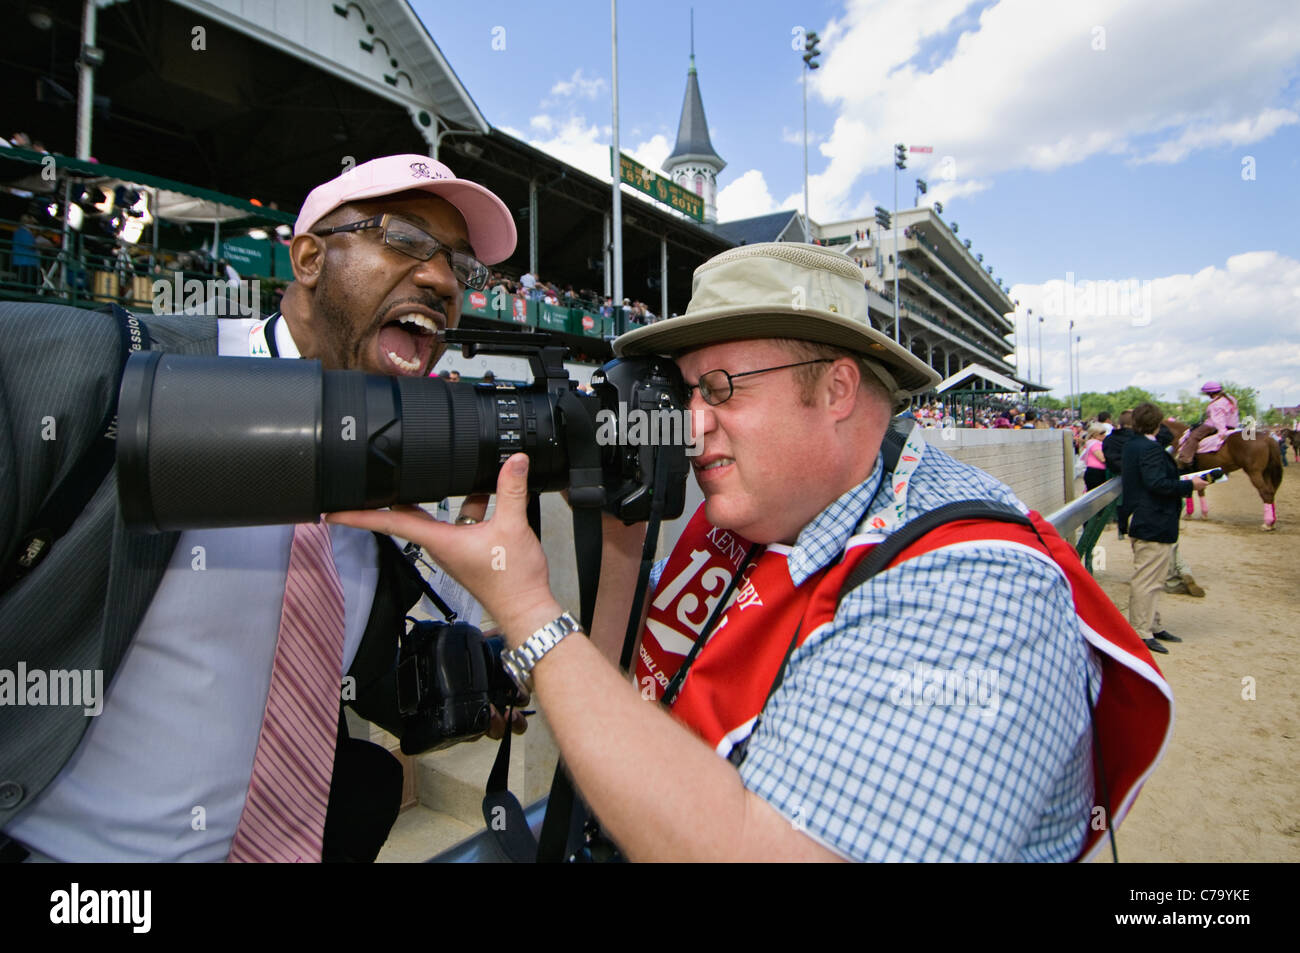 Photographer Jonathan Roberts Shooting Photos on Track at Churchill Downs as Marvin Young Jokes Around in Louisville, - Stock Image